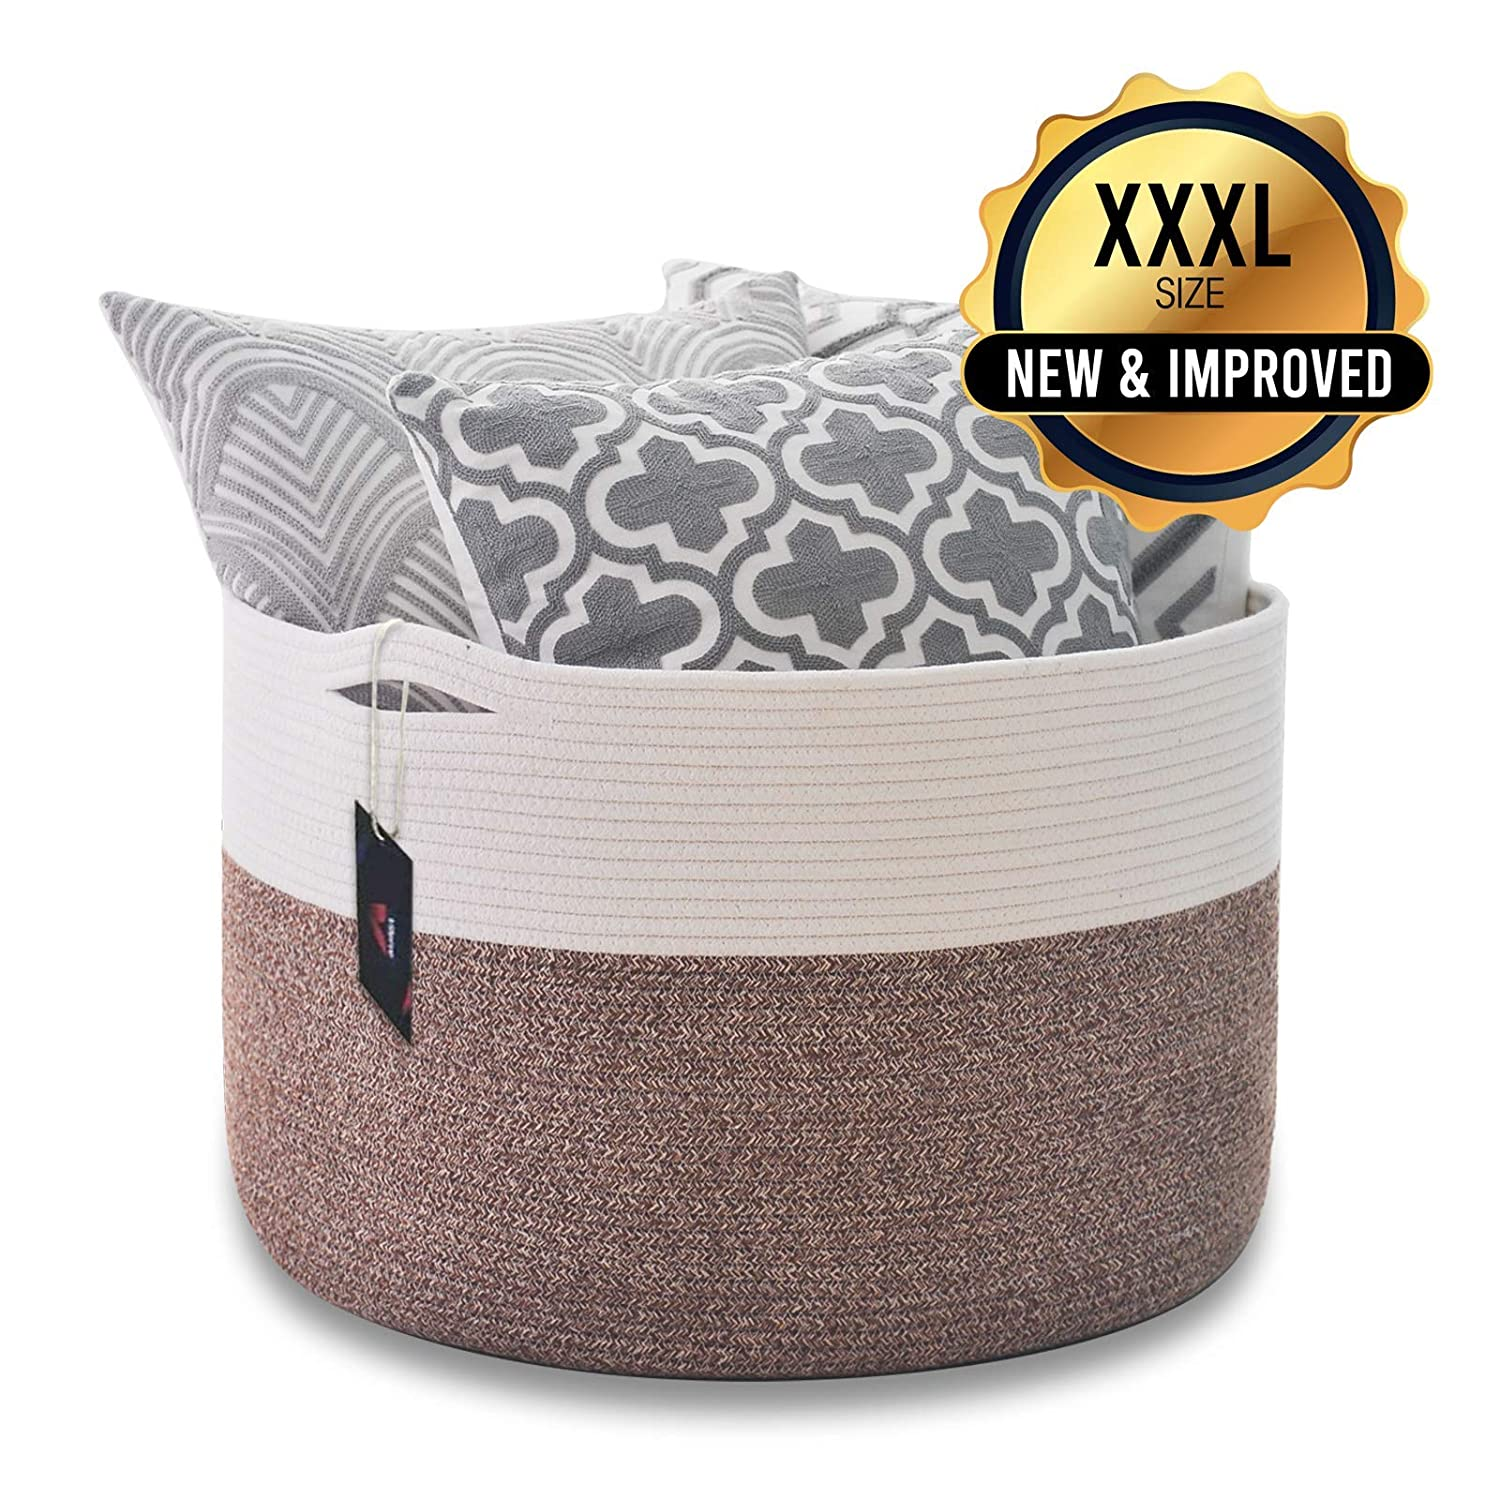 Vilerve XXXL Cotton Rope Basket Woven Storage Basket 22 x13.8 Round Simple Basket Extra-Large Toy Nursery Basket Stylish Laundry Bin in Brown and White Durable and Sturdy Basket